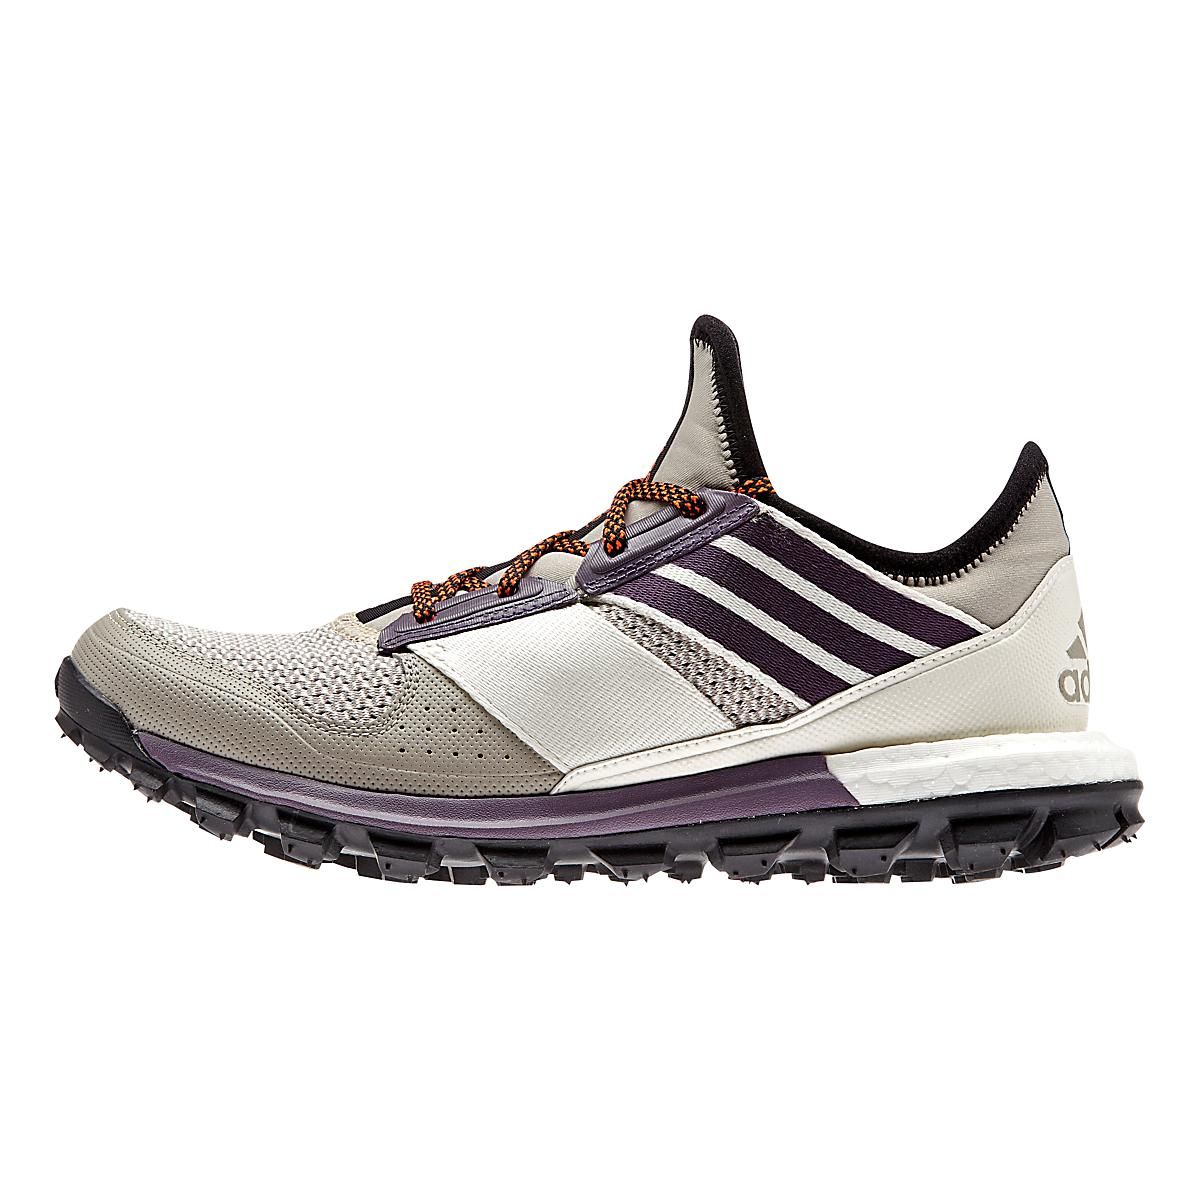 more photos b417c dc17e Womens adidas Response Trail Boost Trail Running Shoe at Road Runner Sports